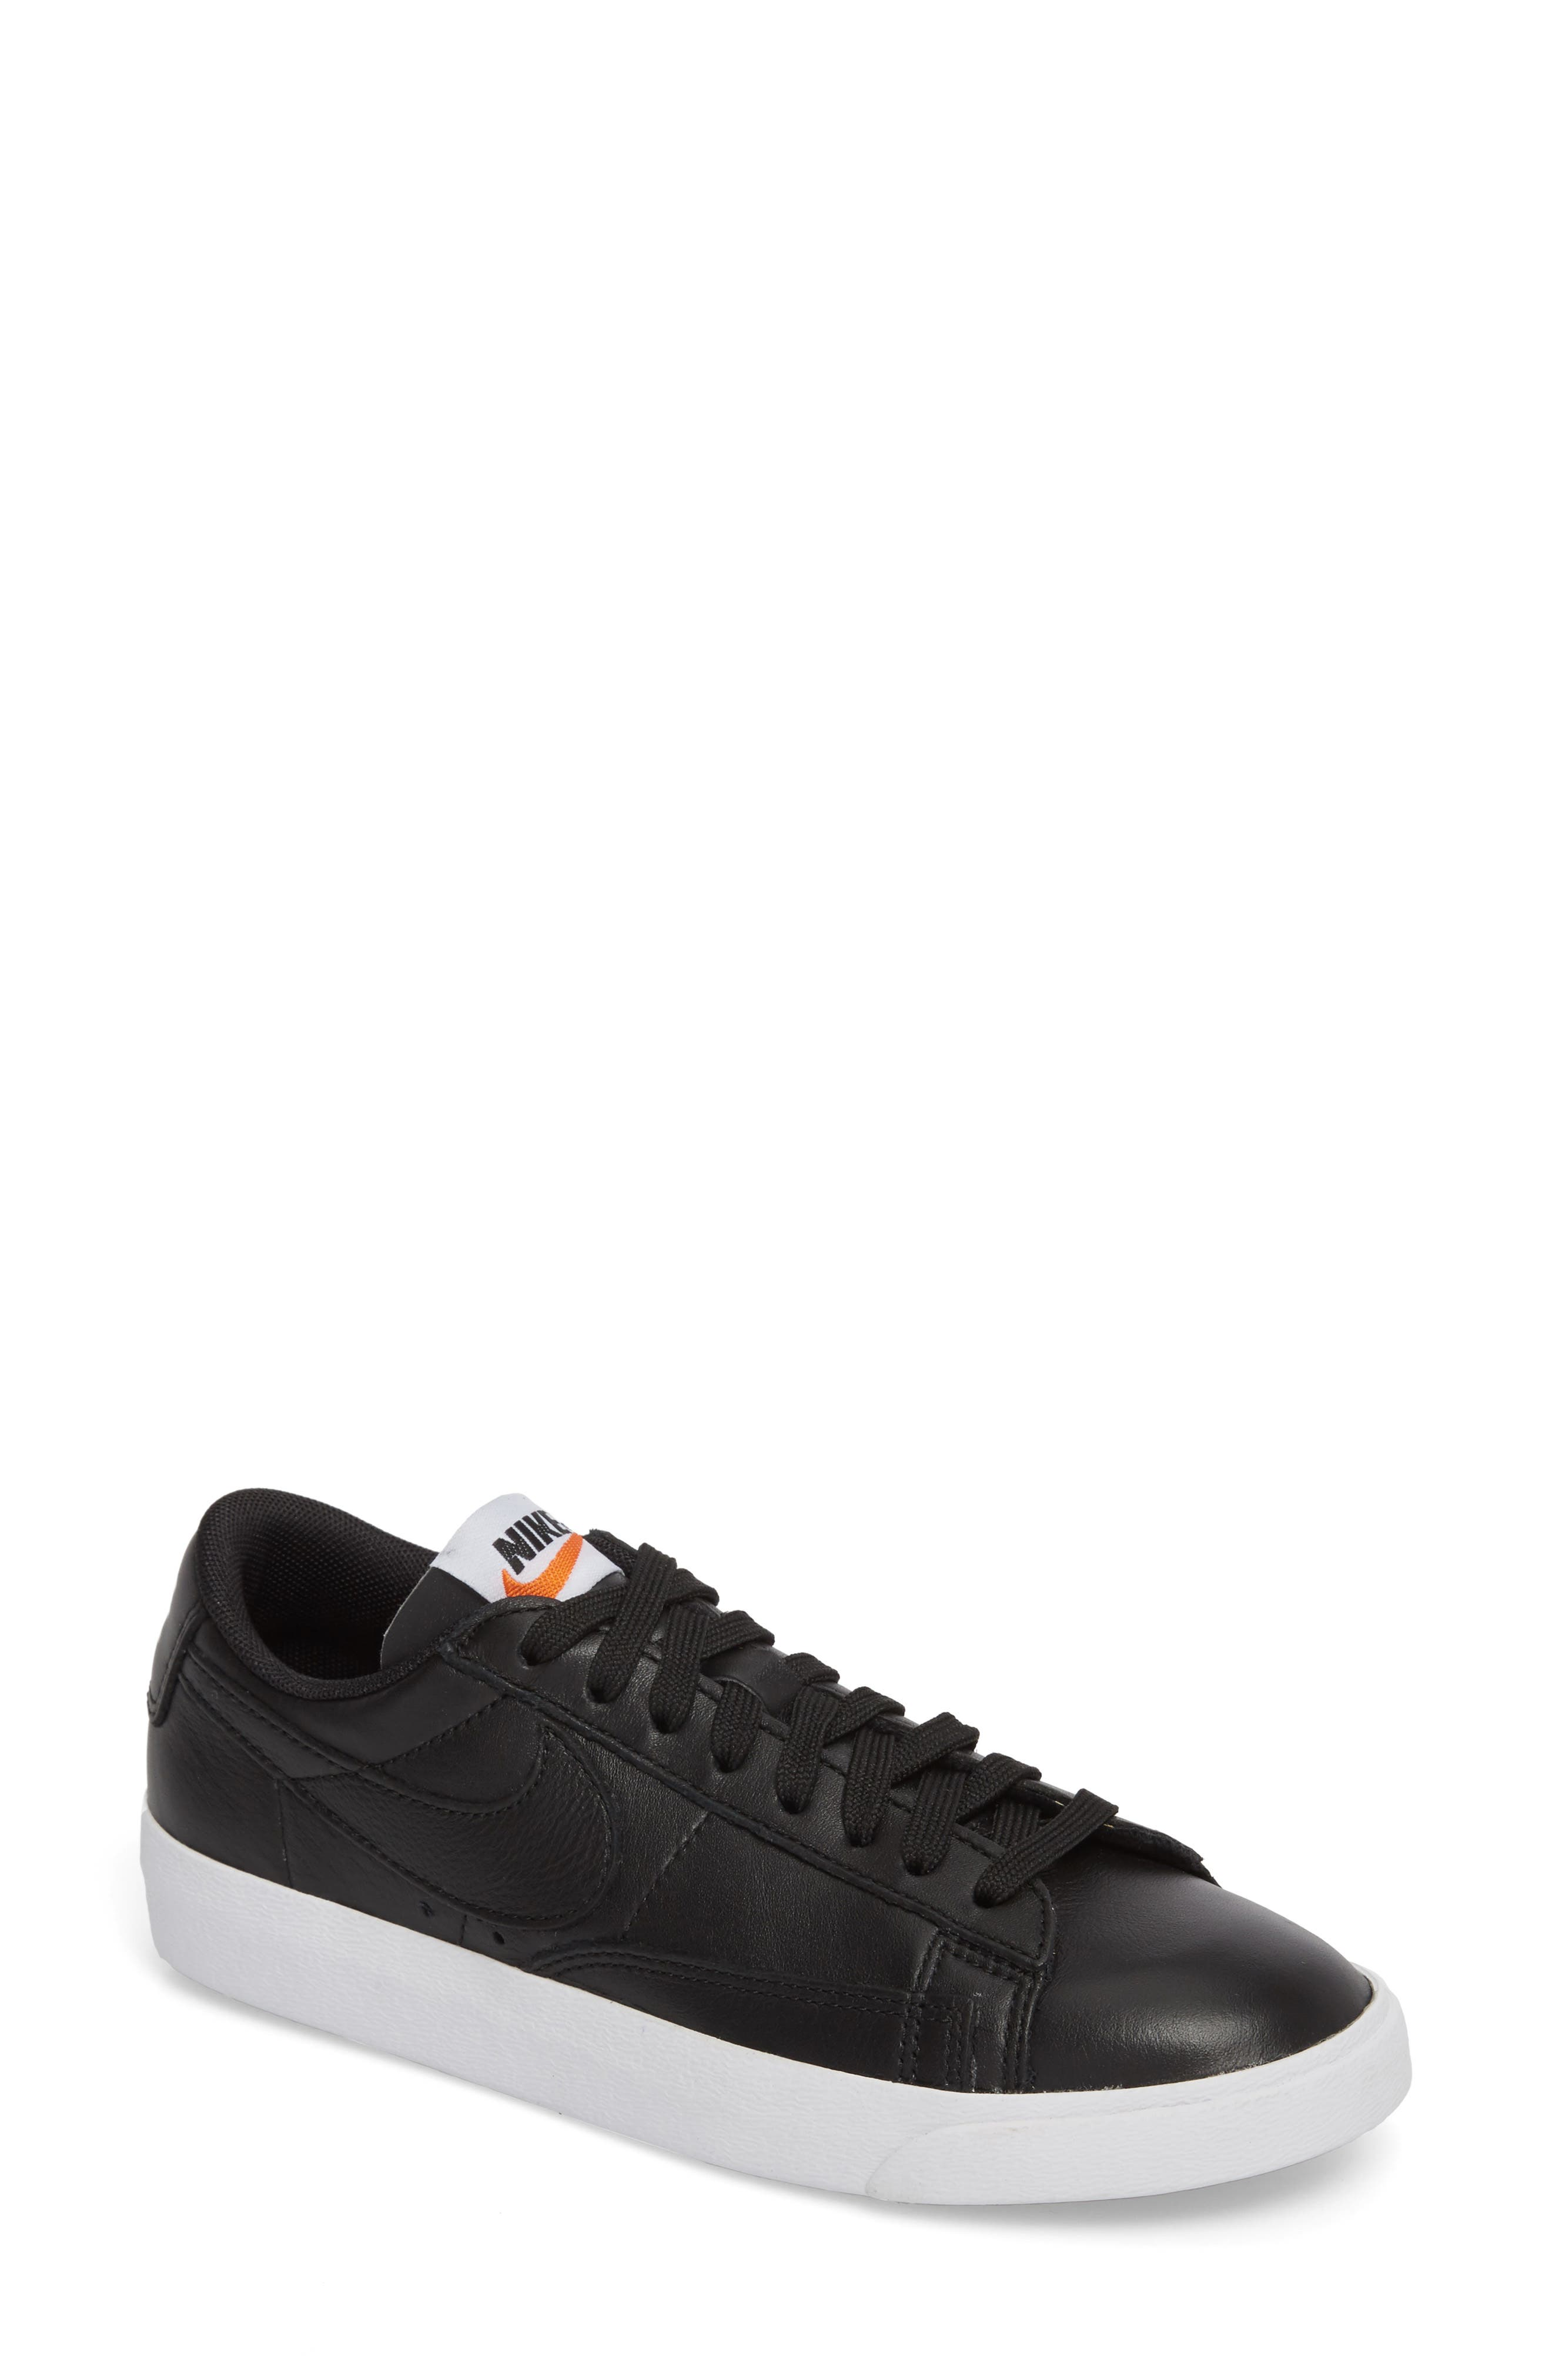 Blazer Low LE Basketball Shoe,                         Main,                         color, Black/ Black/ White